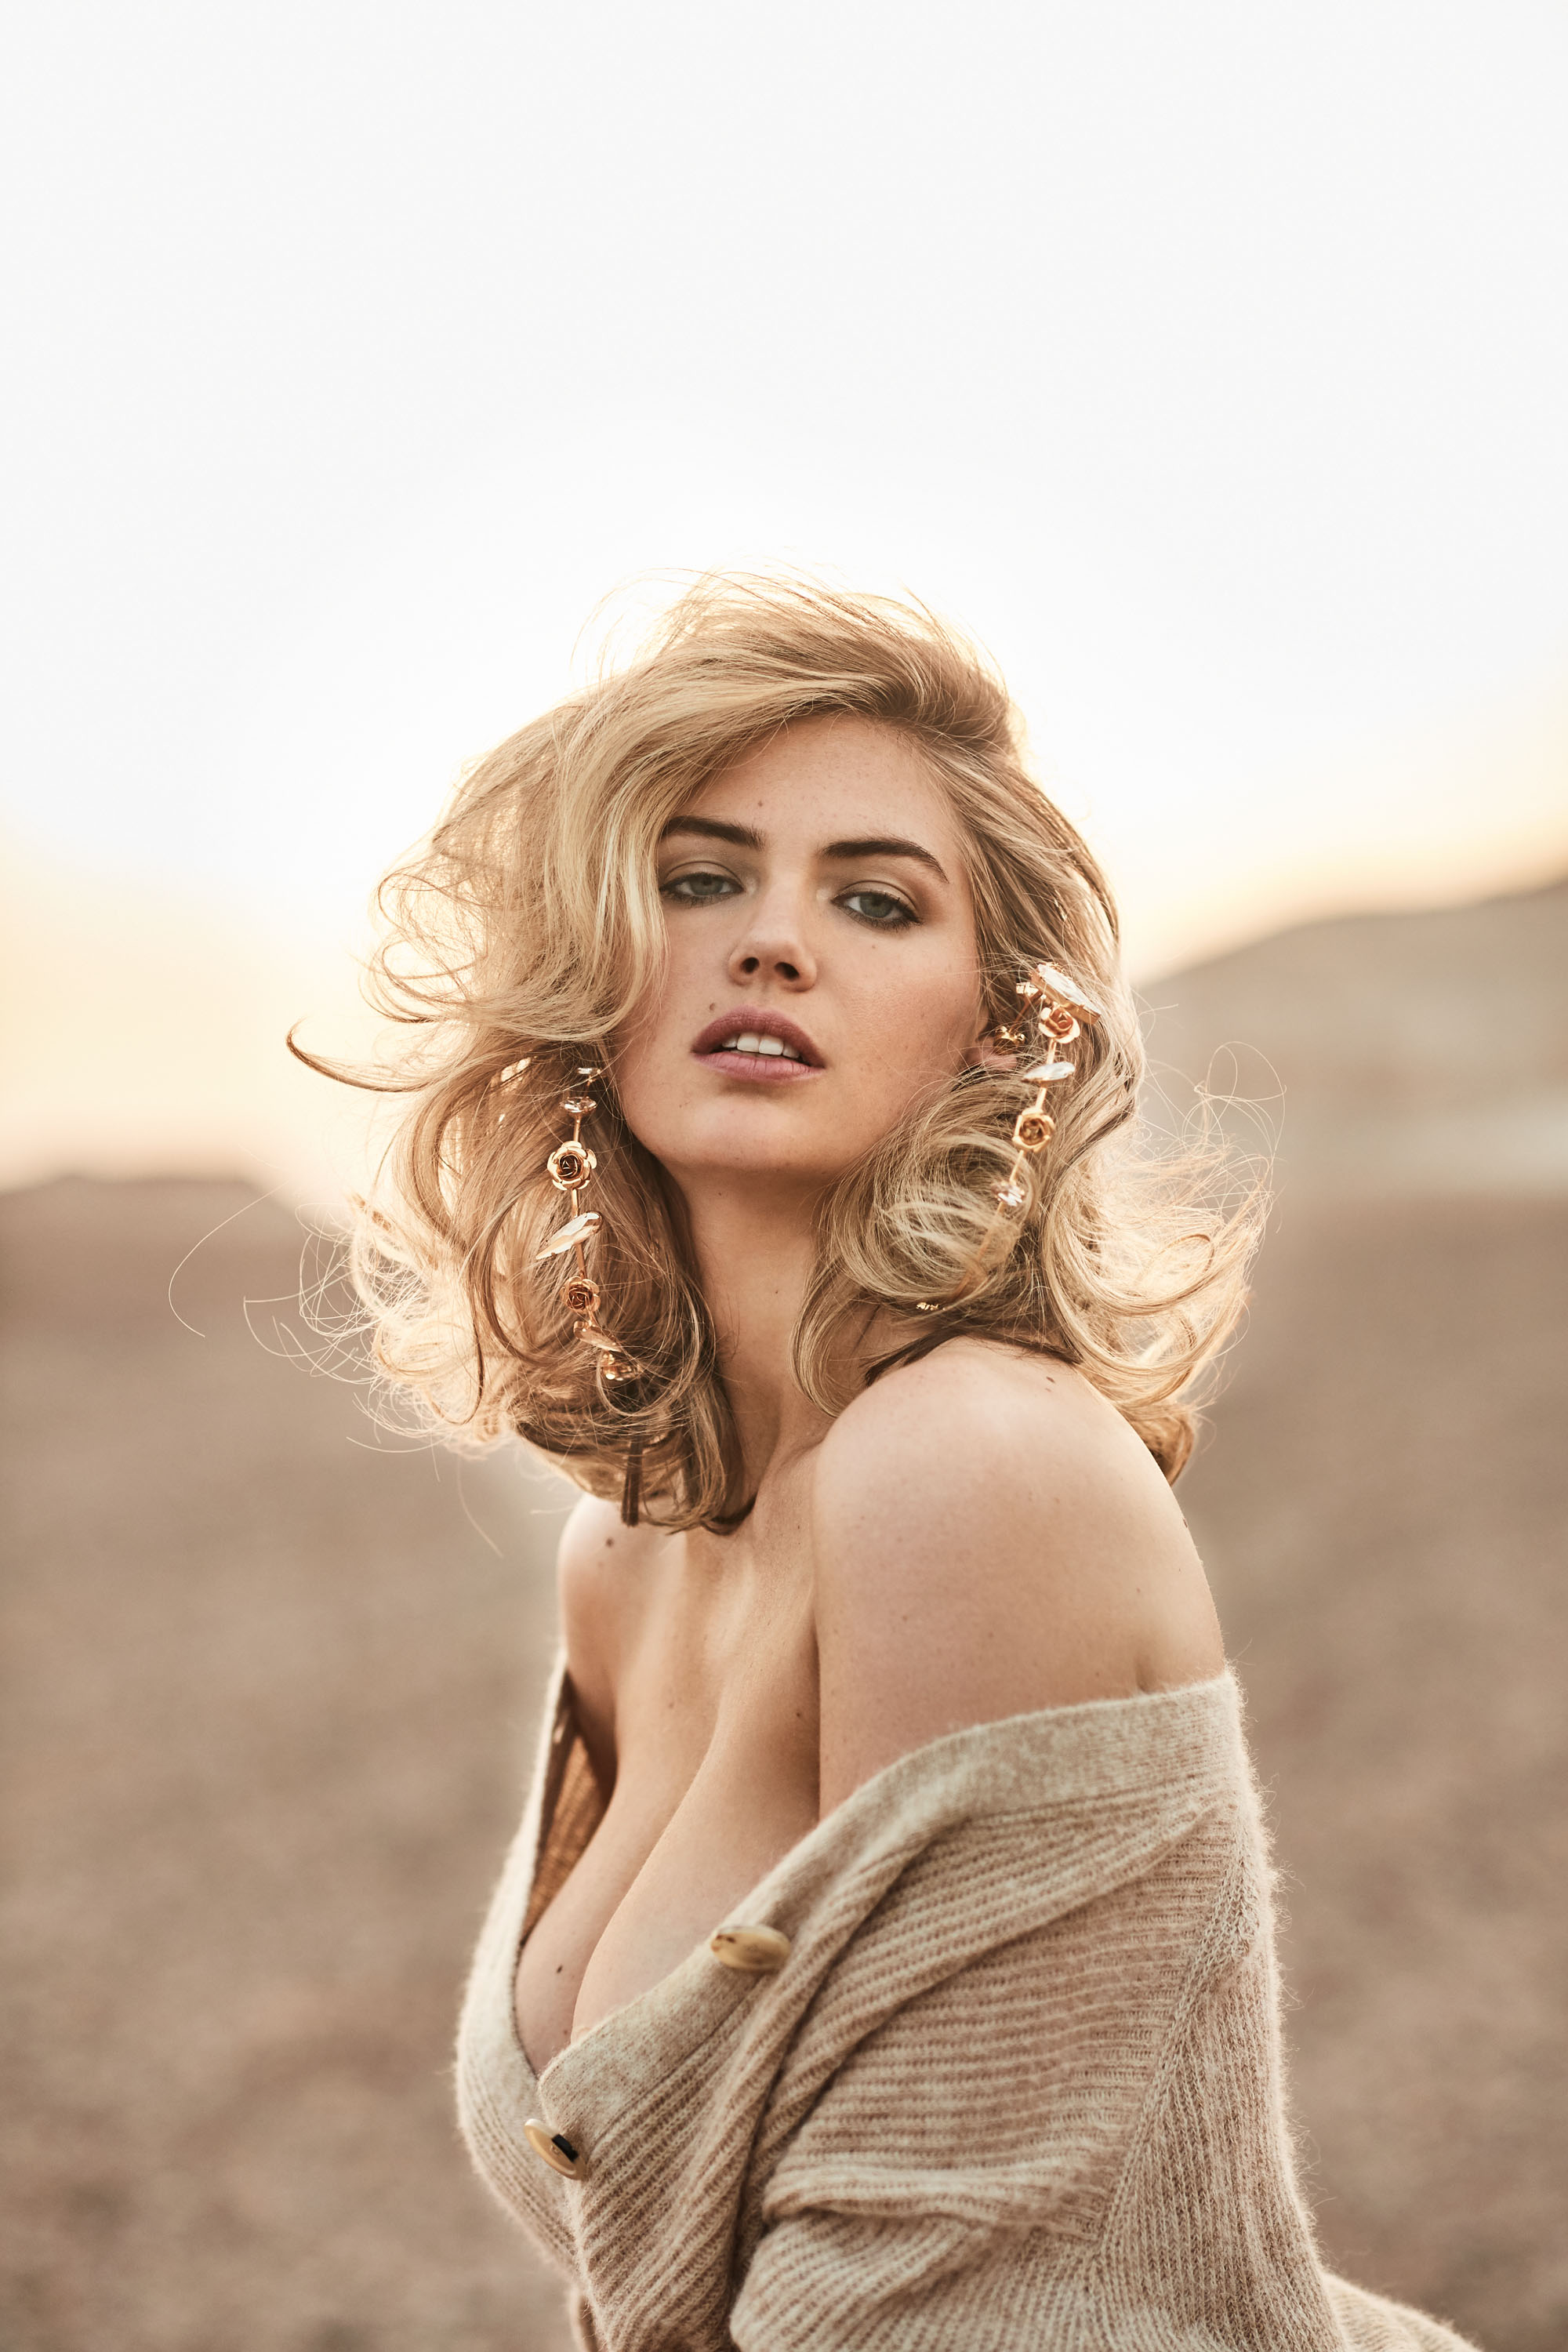 180413_GB_KATE_UPTON_Look_08_160_V6.jpg